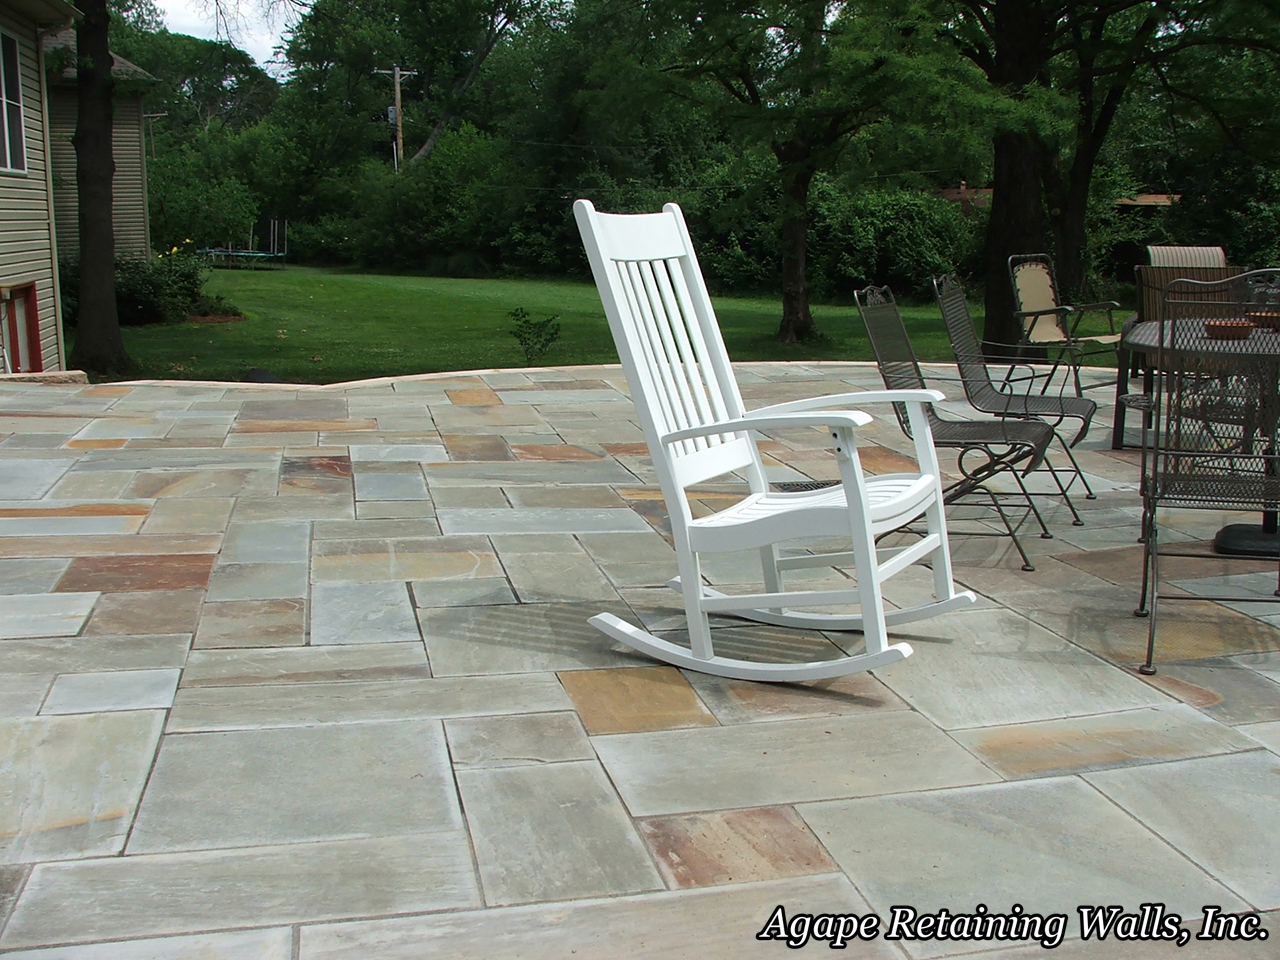 ... Natural Stone Paver Patio To A Long Line Of Incredible Hardscape  Projects We At Agape Retaining Walls, Inc. Have Designed And Installed Over  The Years.